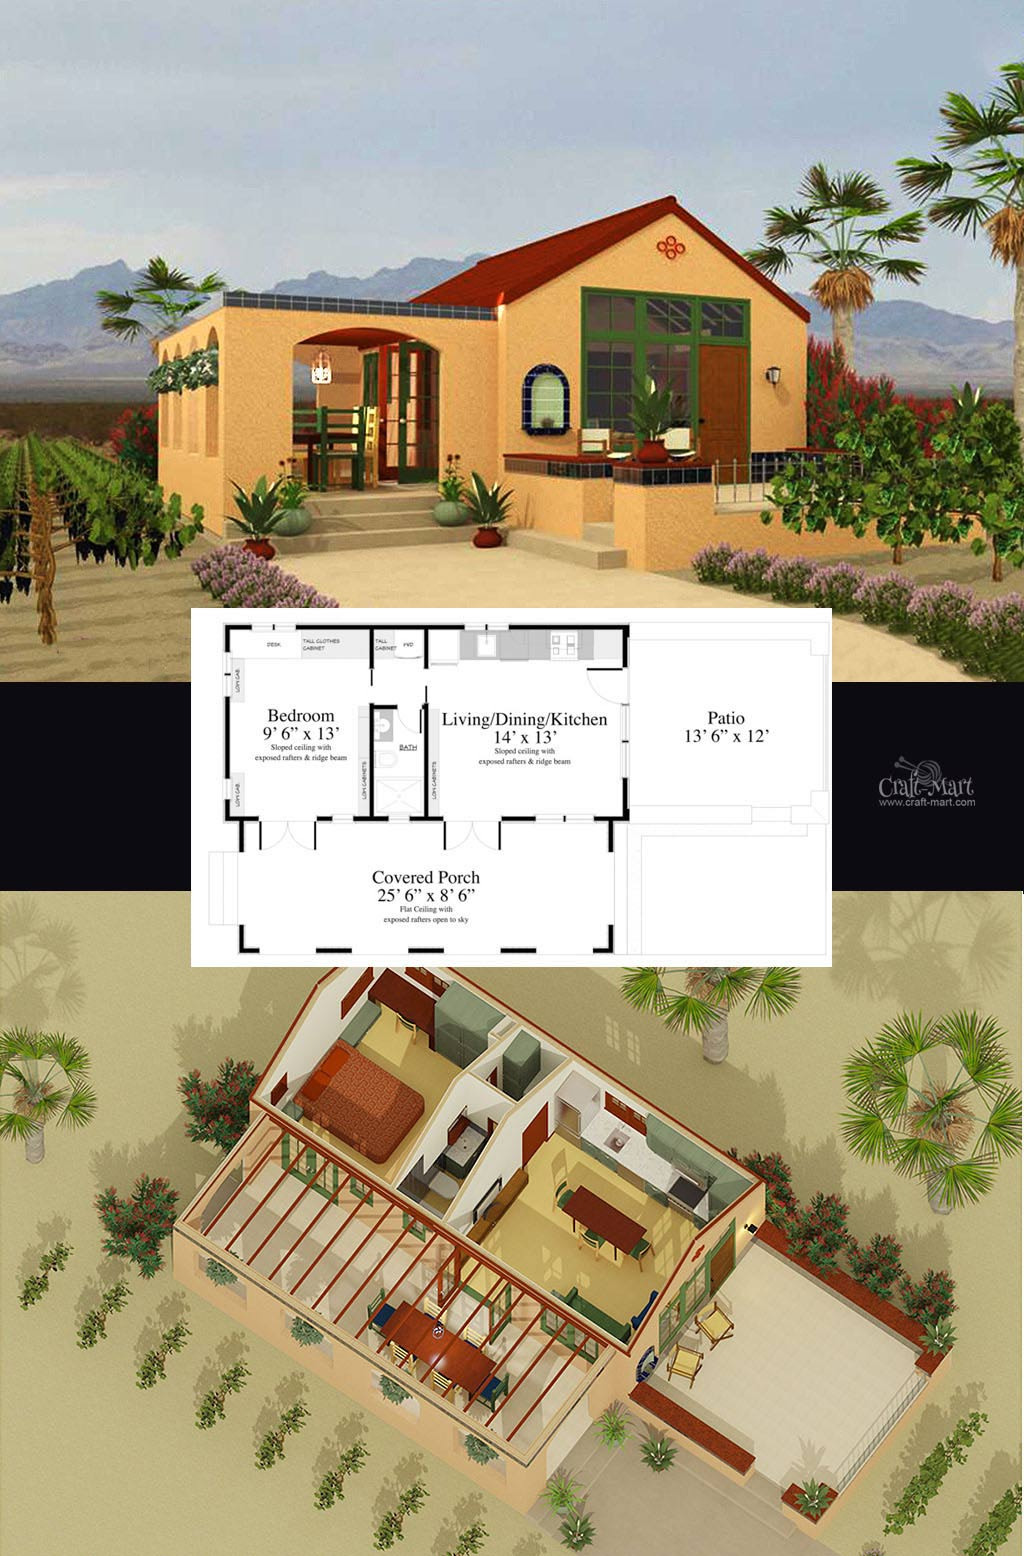 Free Small House Plans and Designs Inspirational 27 Adorable Free Tiny House Floor Plans Craft Mart